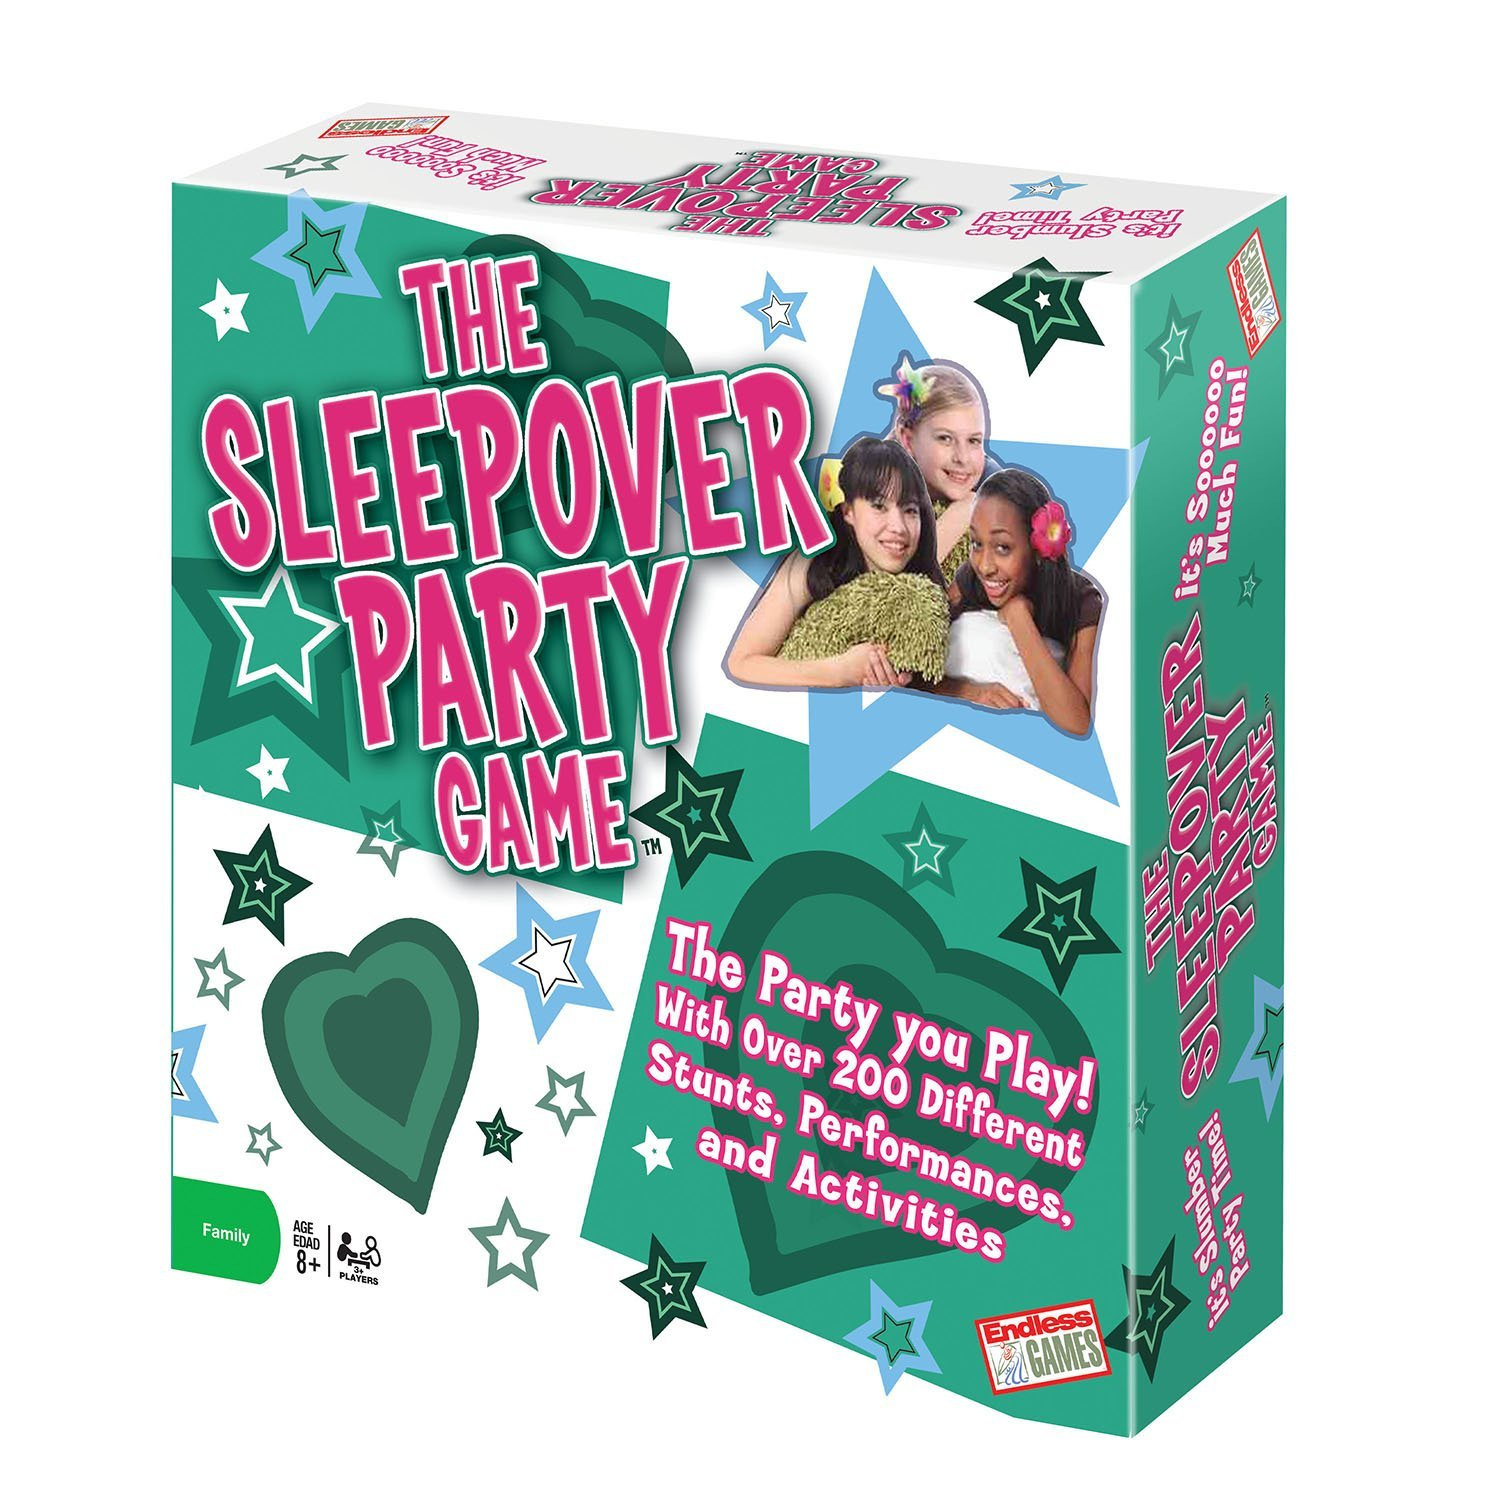 The Sleepover Party Game, Over 200 different stunts, performances, and activities By Endless Games by